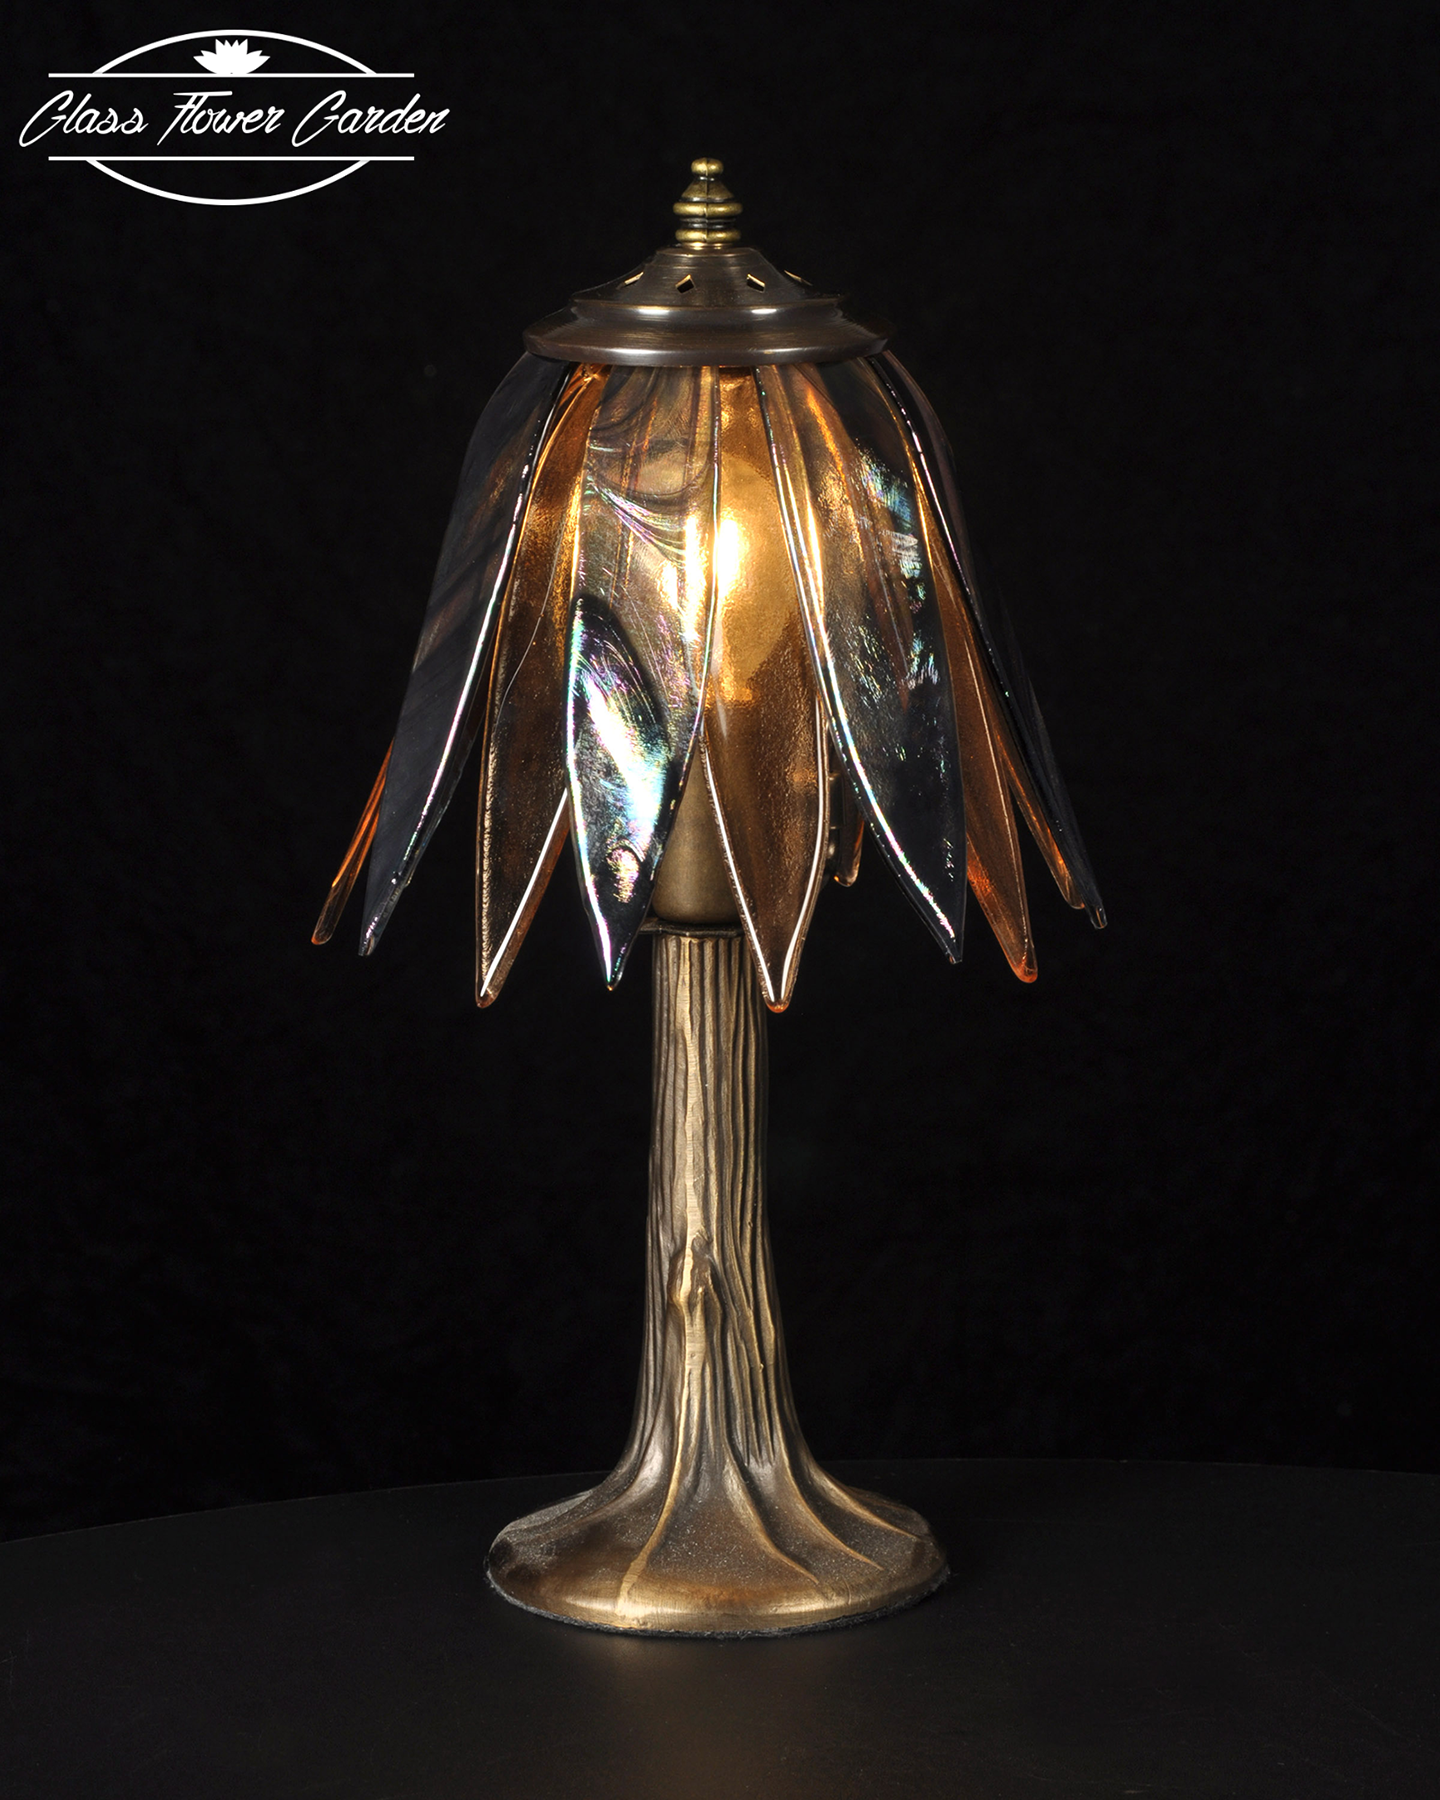 Translucent glass shaded lamp glass flower garden online store translucent glass shaded lamp mozeypictures Gallery